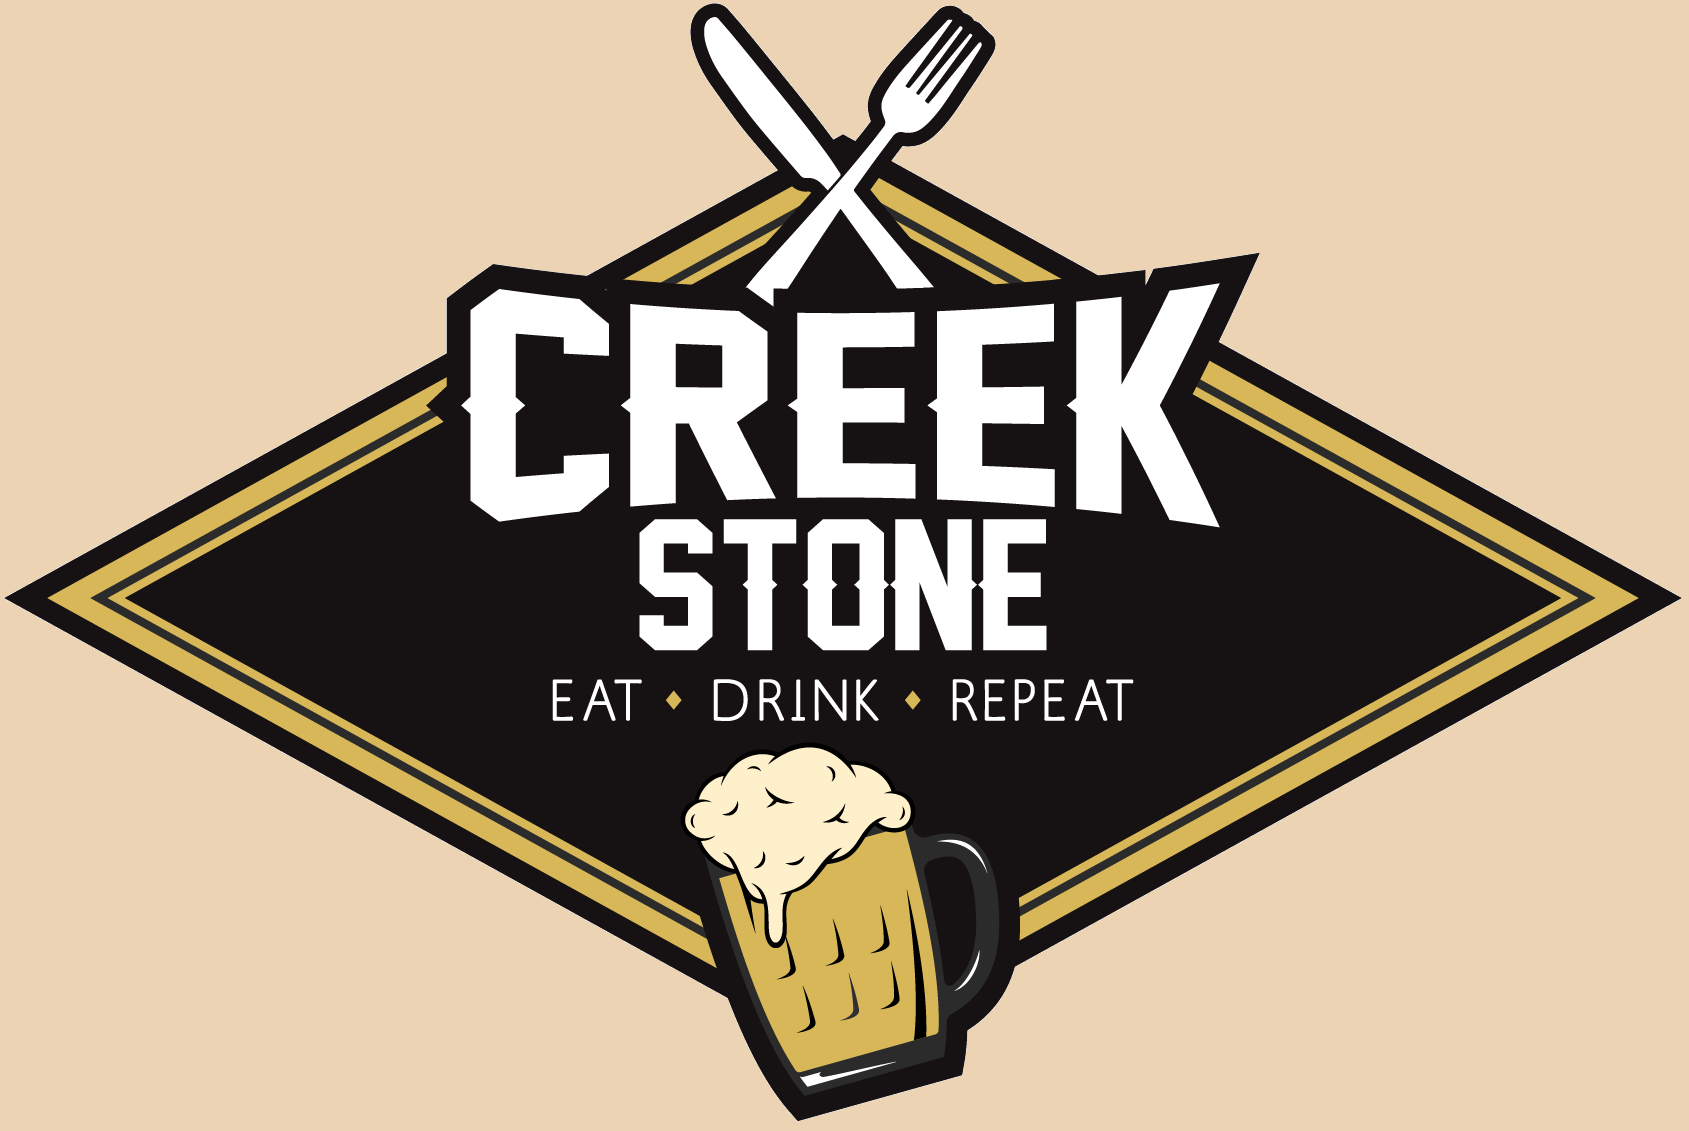 Creek Stone Restaurant - Menu